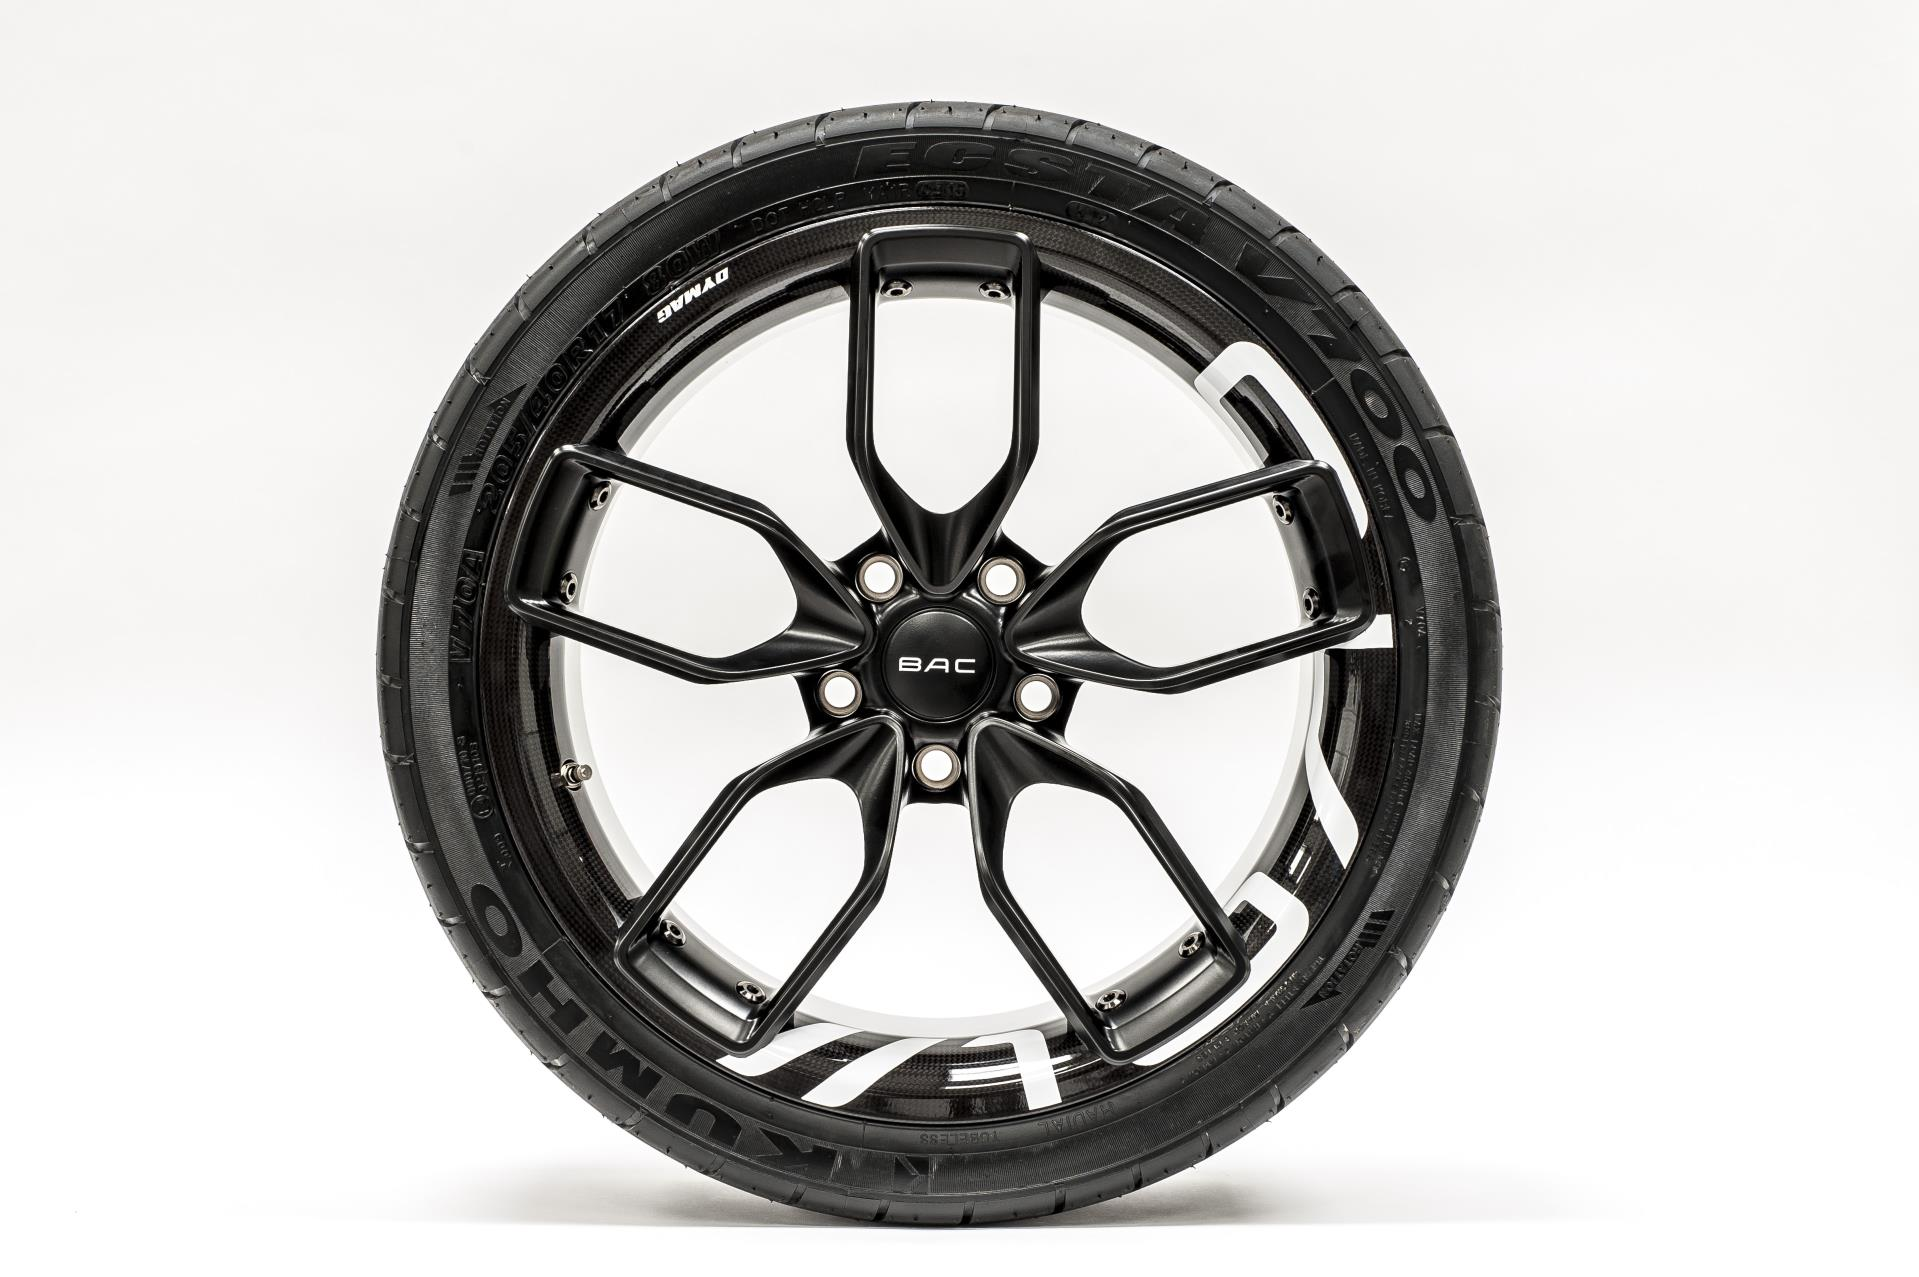 Focus St Wheels >> BAC to Showcase Carbon Composite Wheels at 2016 Goodwood Festival of Speed - autoevolution